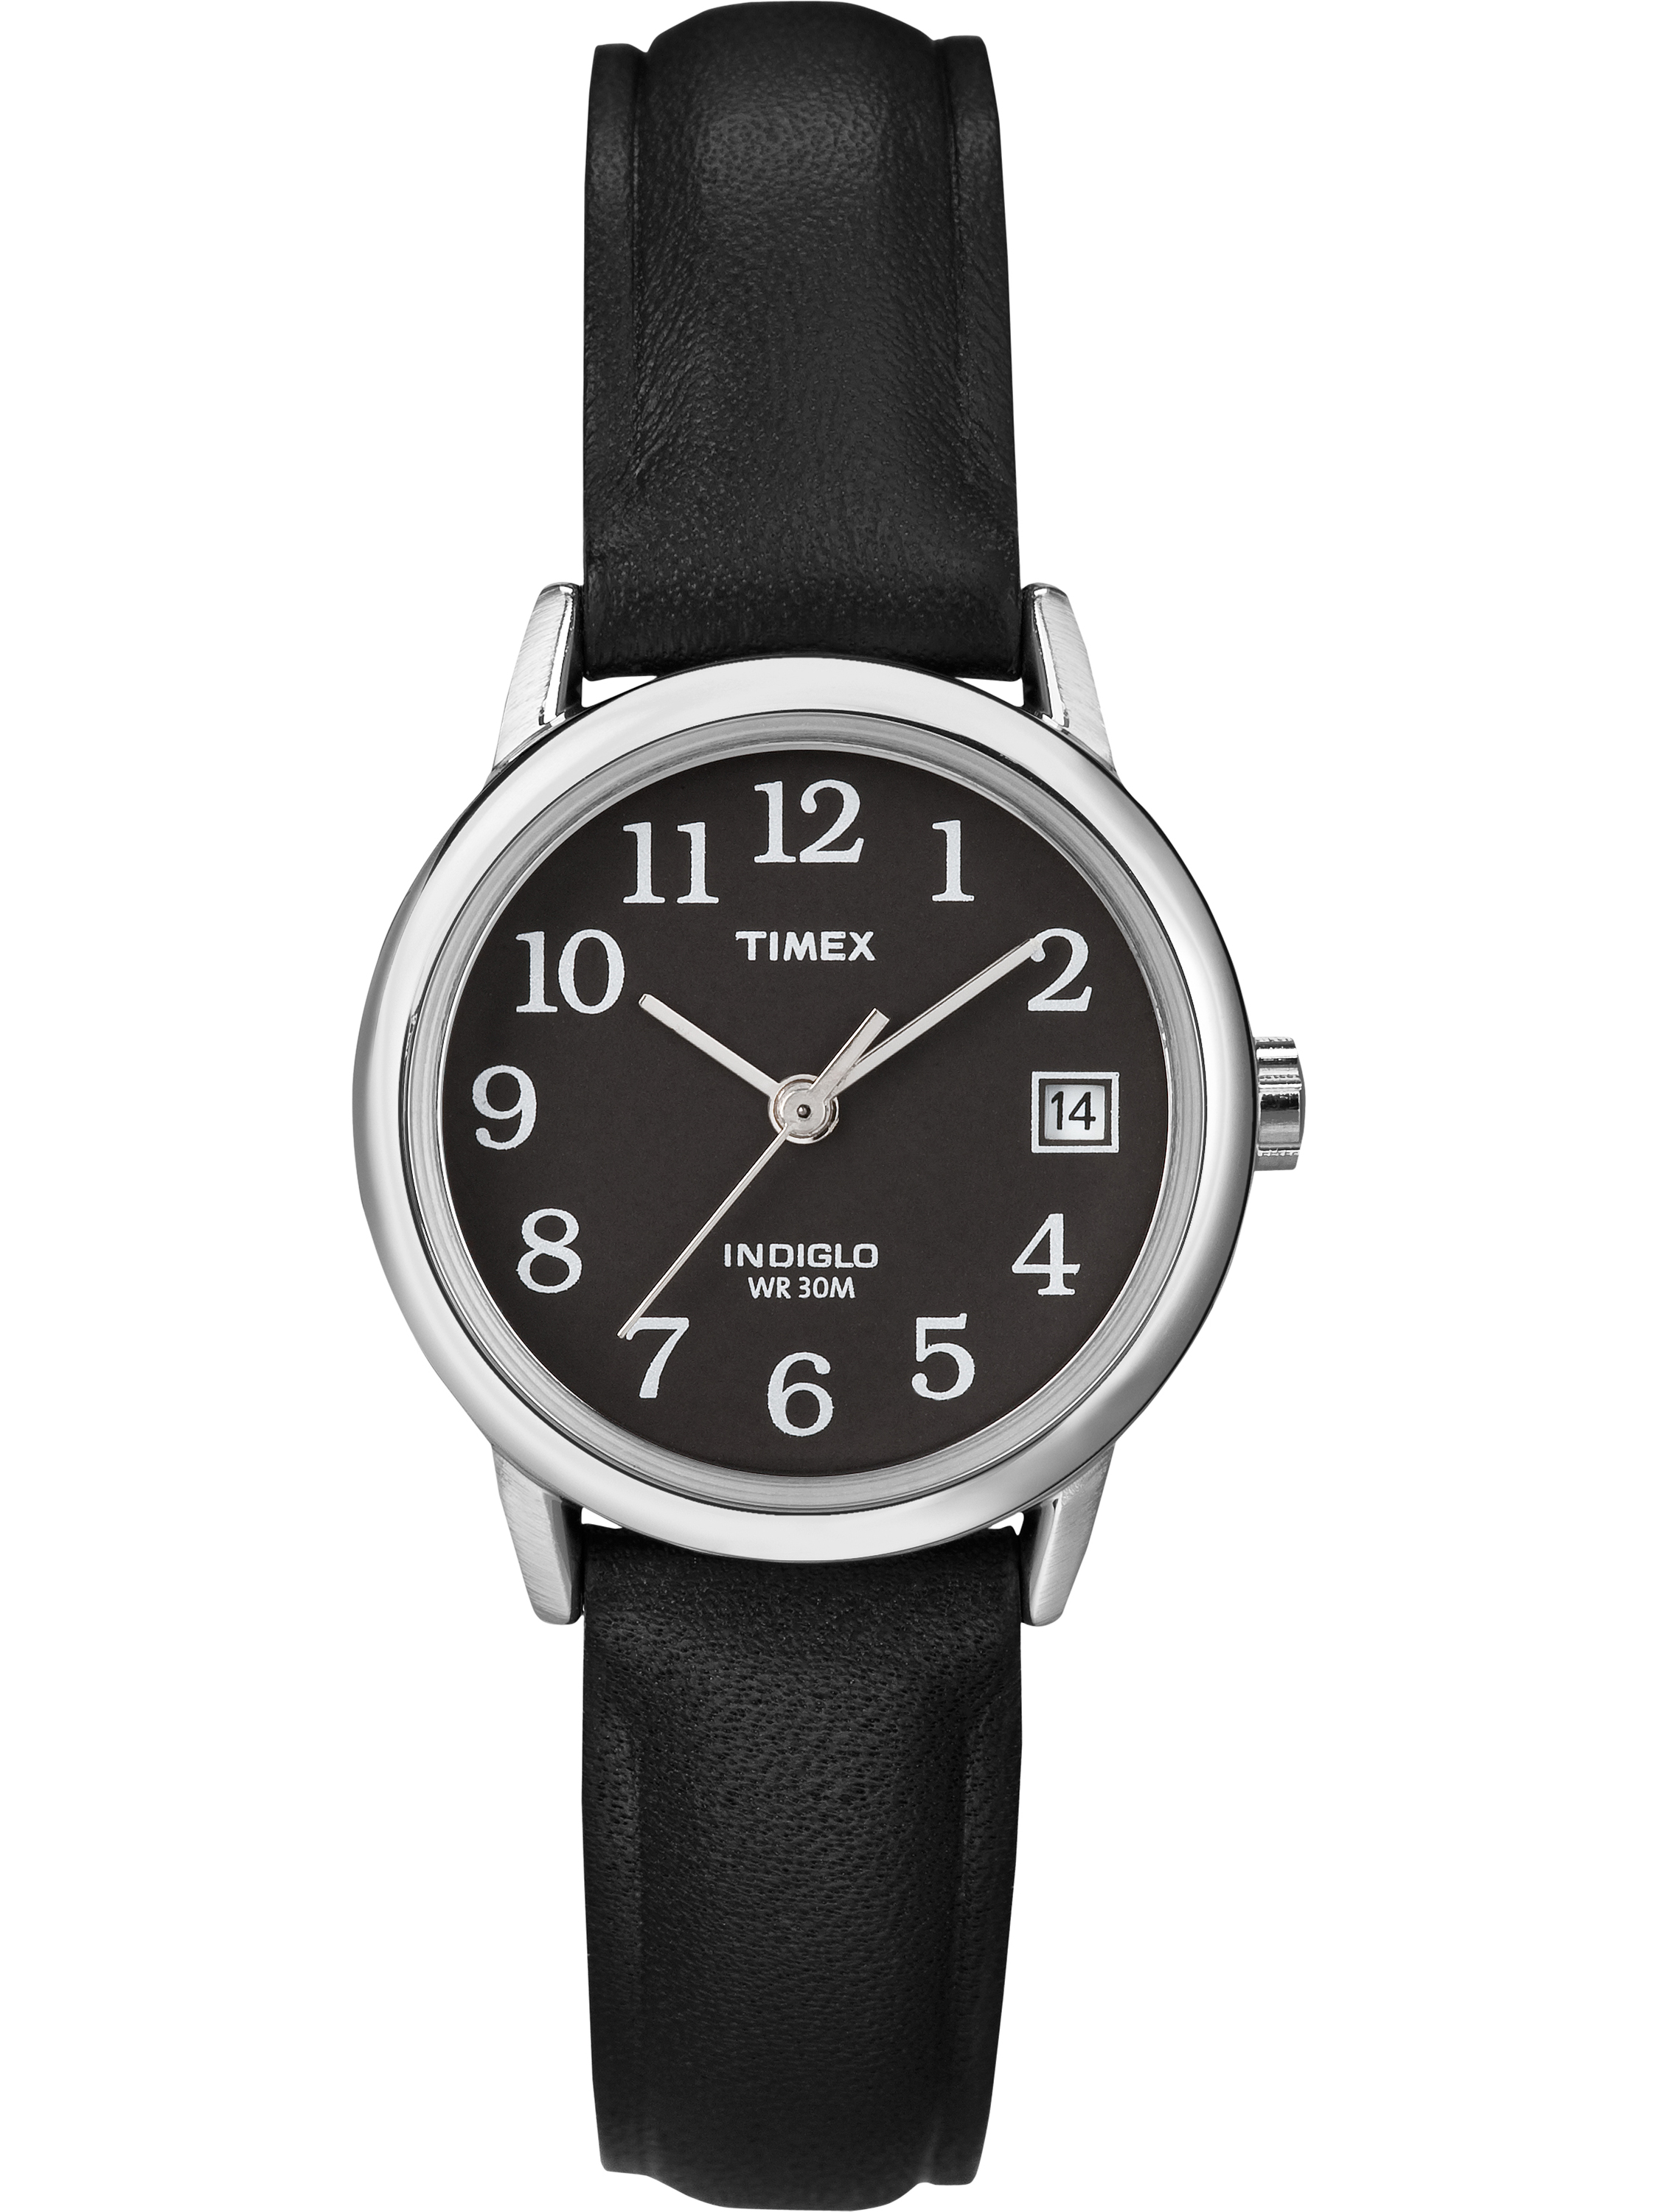 Timex Women's Easy Reader Watch, Black Leather Strap